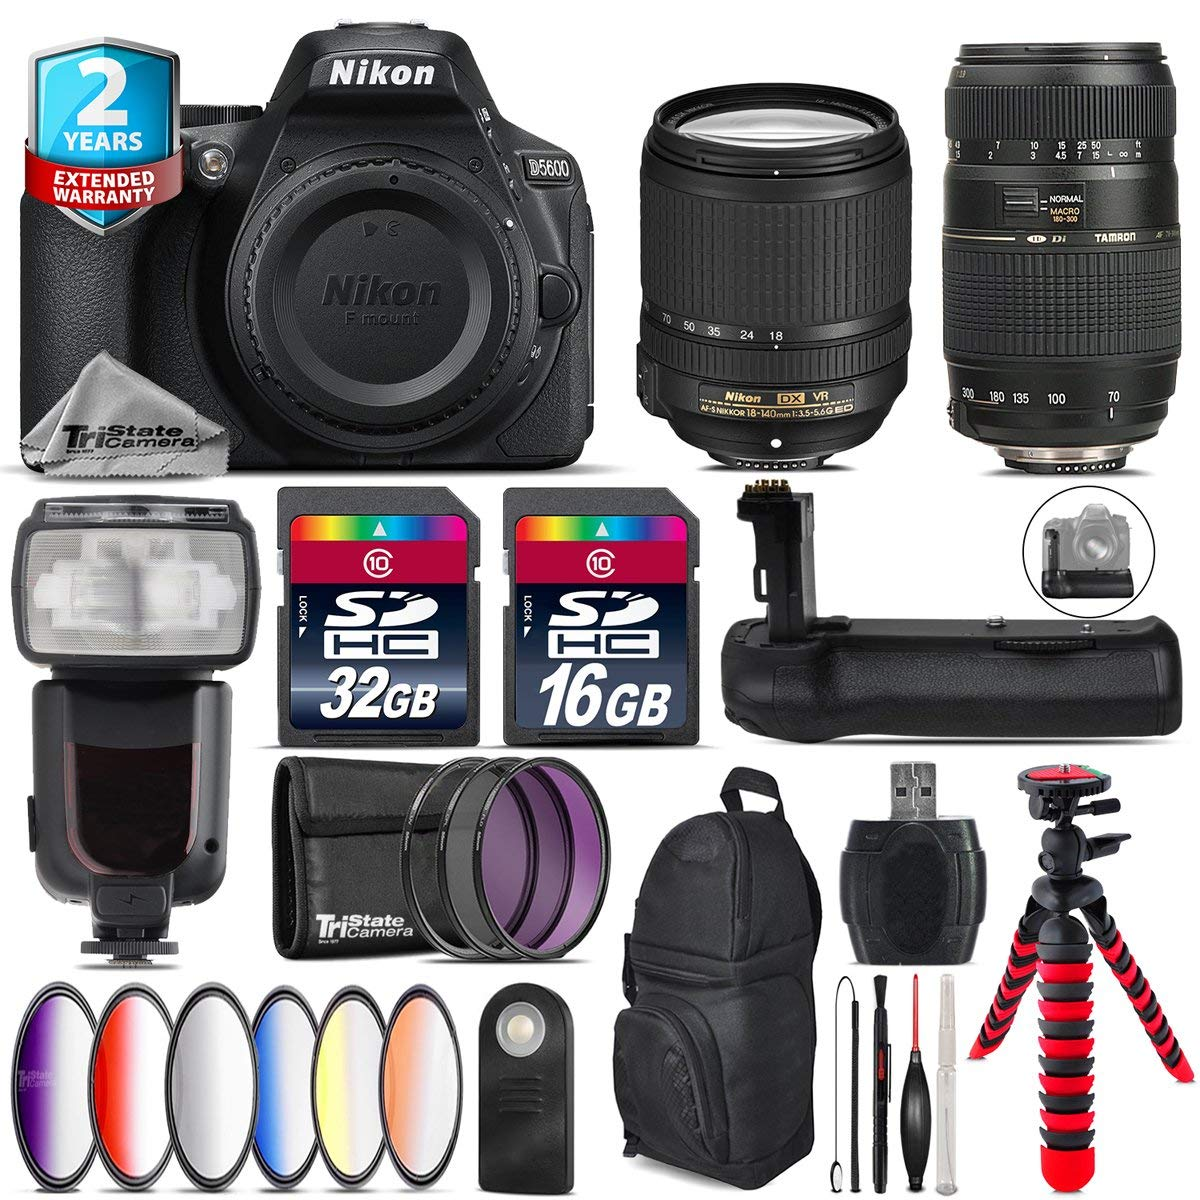 Holiday Saving Bundle for D5600 DSLR Camera + Tamron 70-300mm Di LD Lens + 18-140mm VR Lens + Flash with LCD Display + Battery Grip + 6PC Graduated Color Filter - International Version